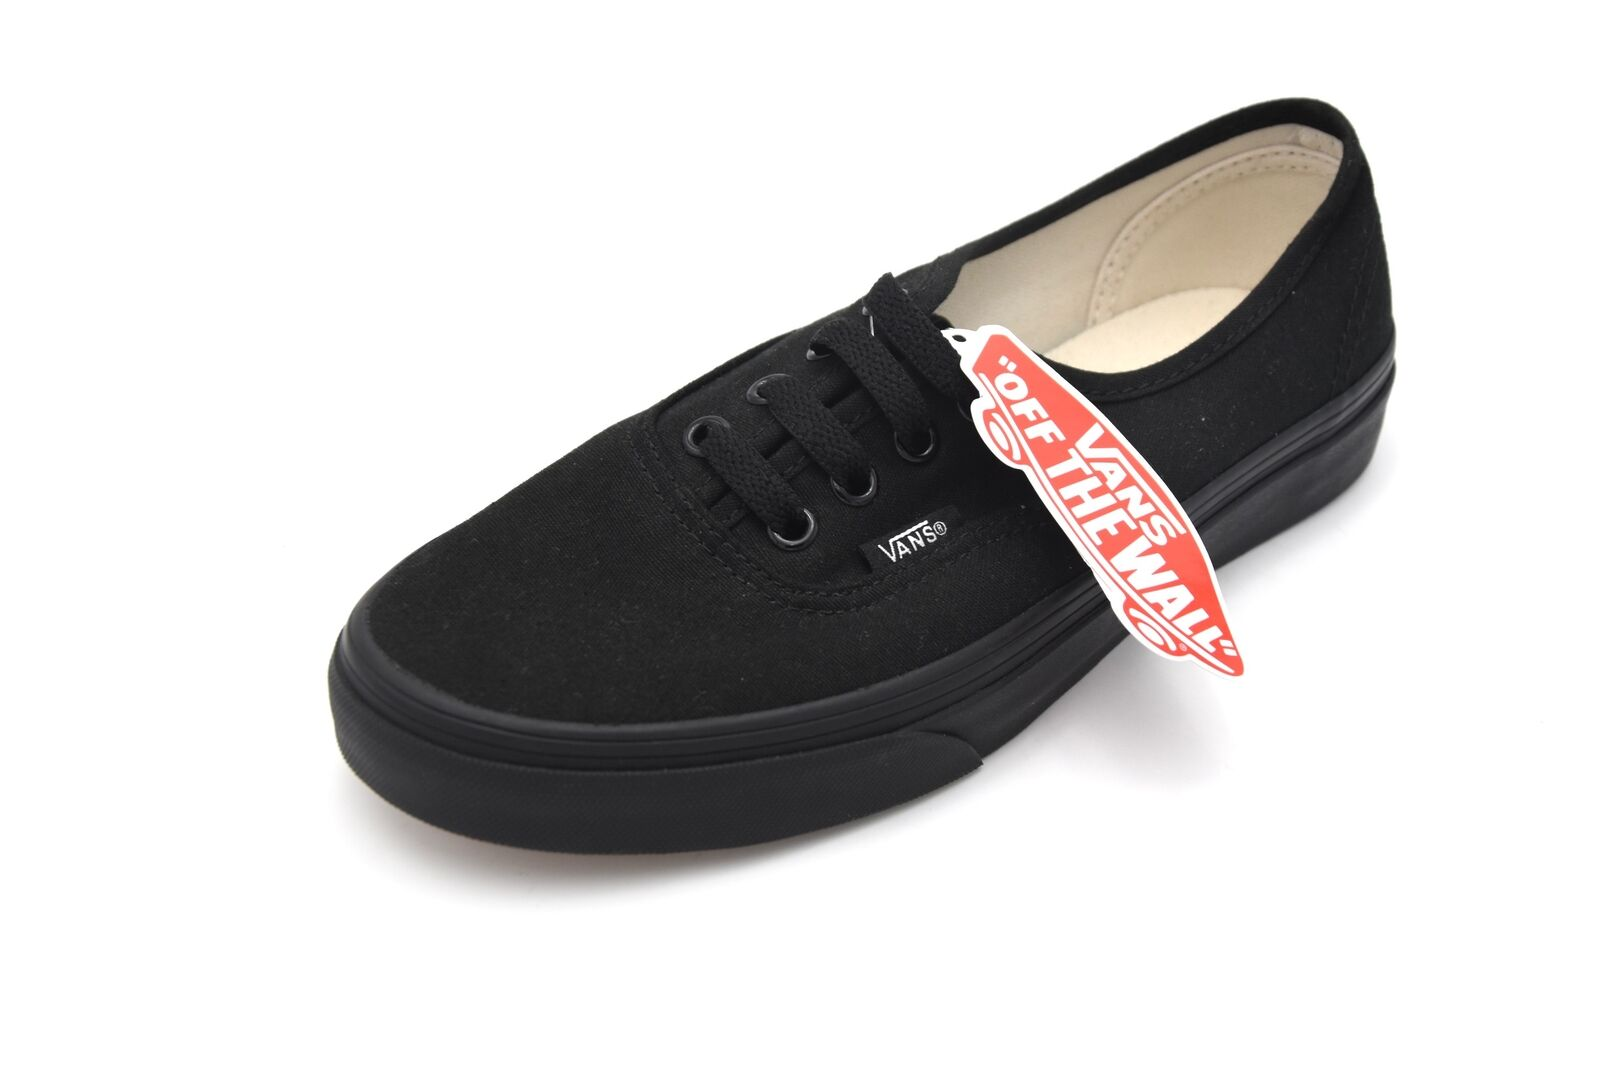 VANS MAN FREE TIME CASUAL SNEAKER SHOES CANVAS CODE VN000EE3BKA VN000EE3BKA VN000EE3BKA AUTHENTIC d060f7